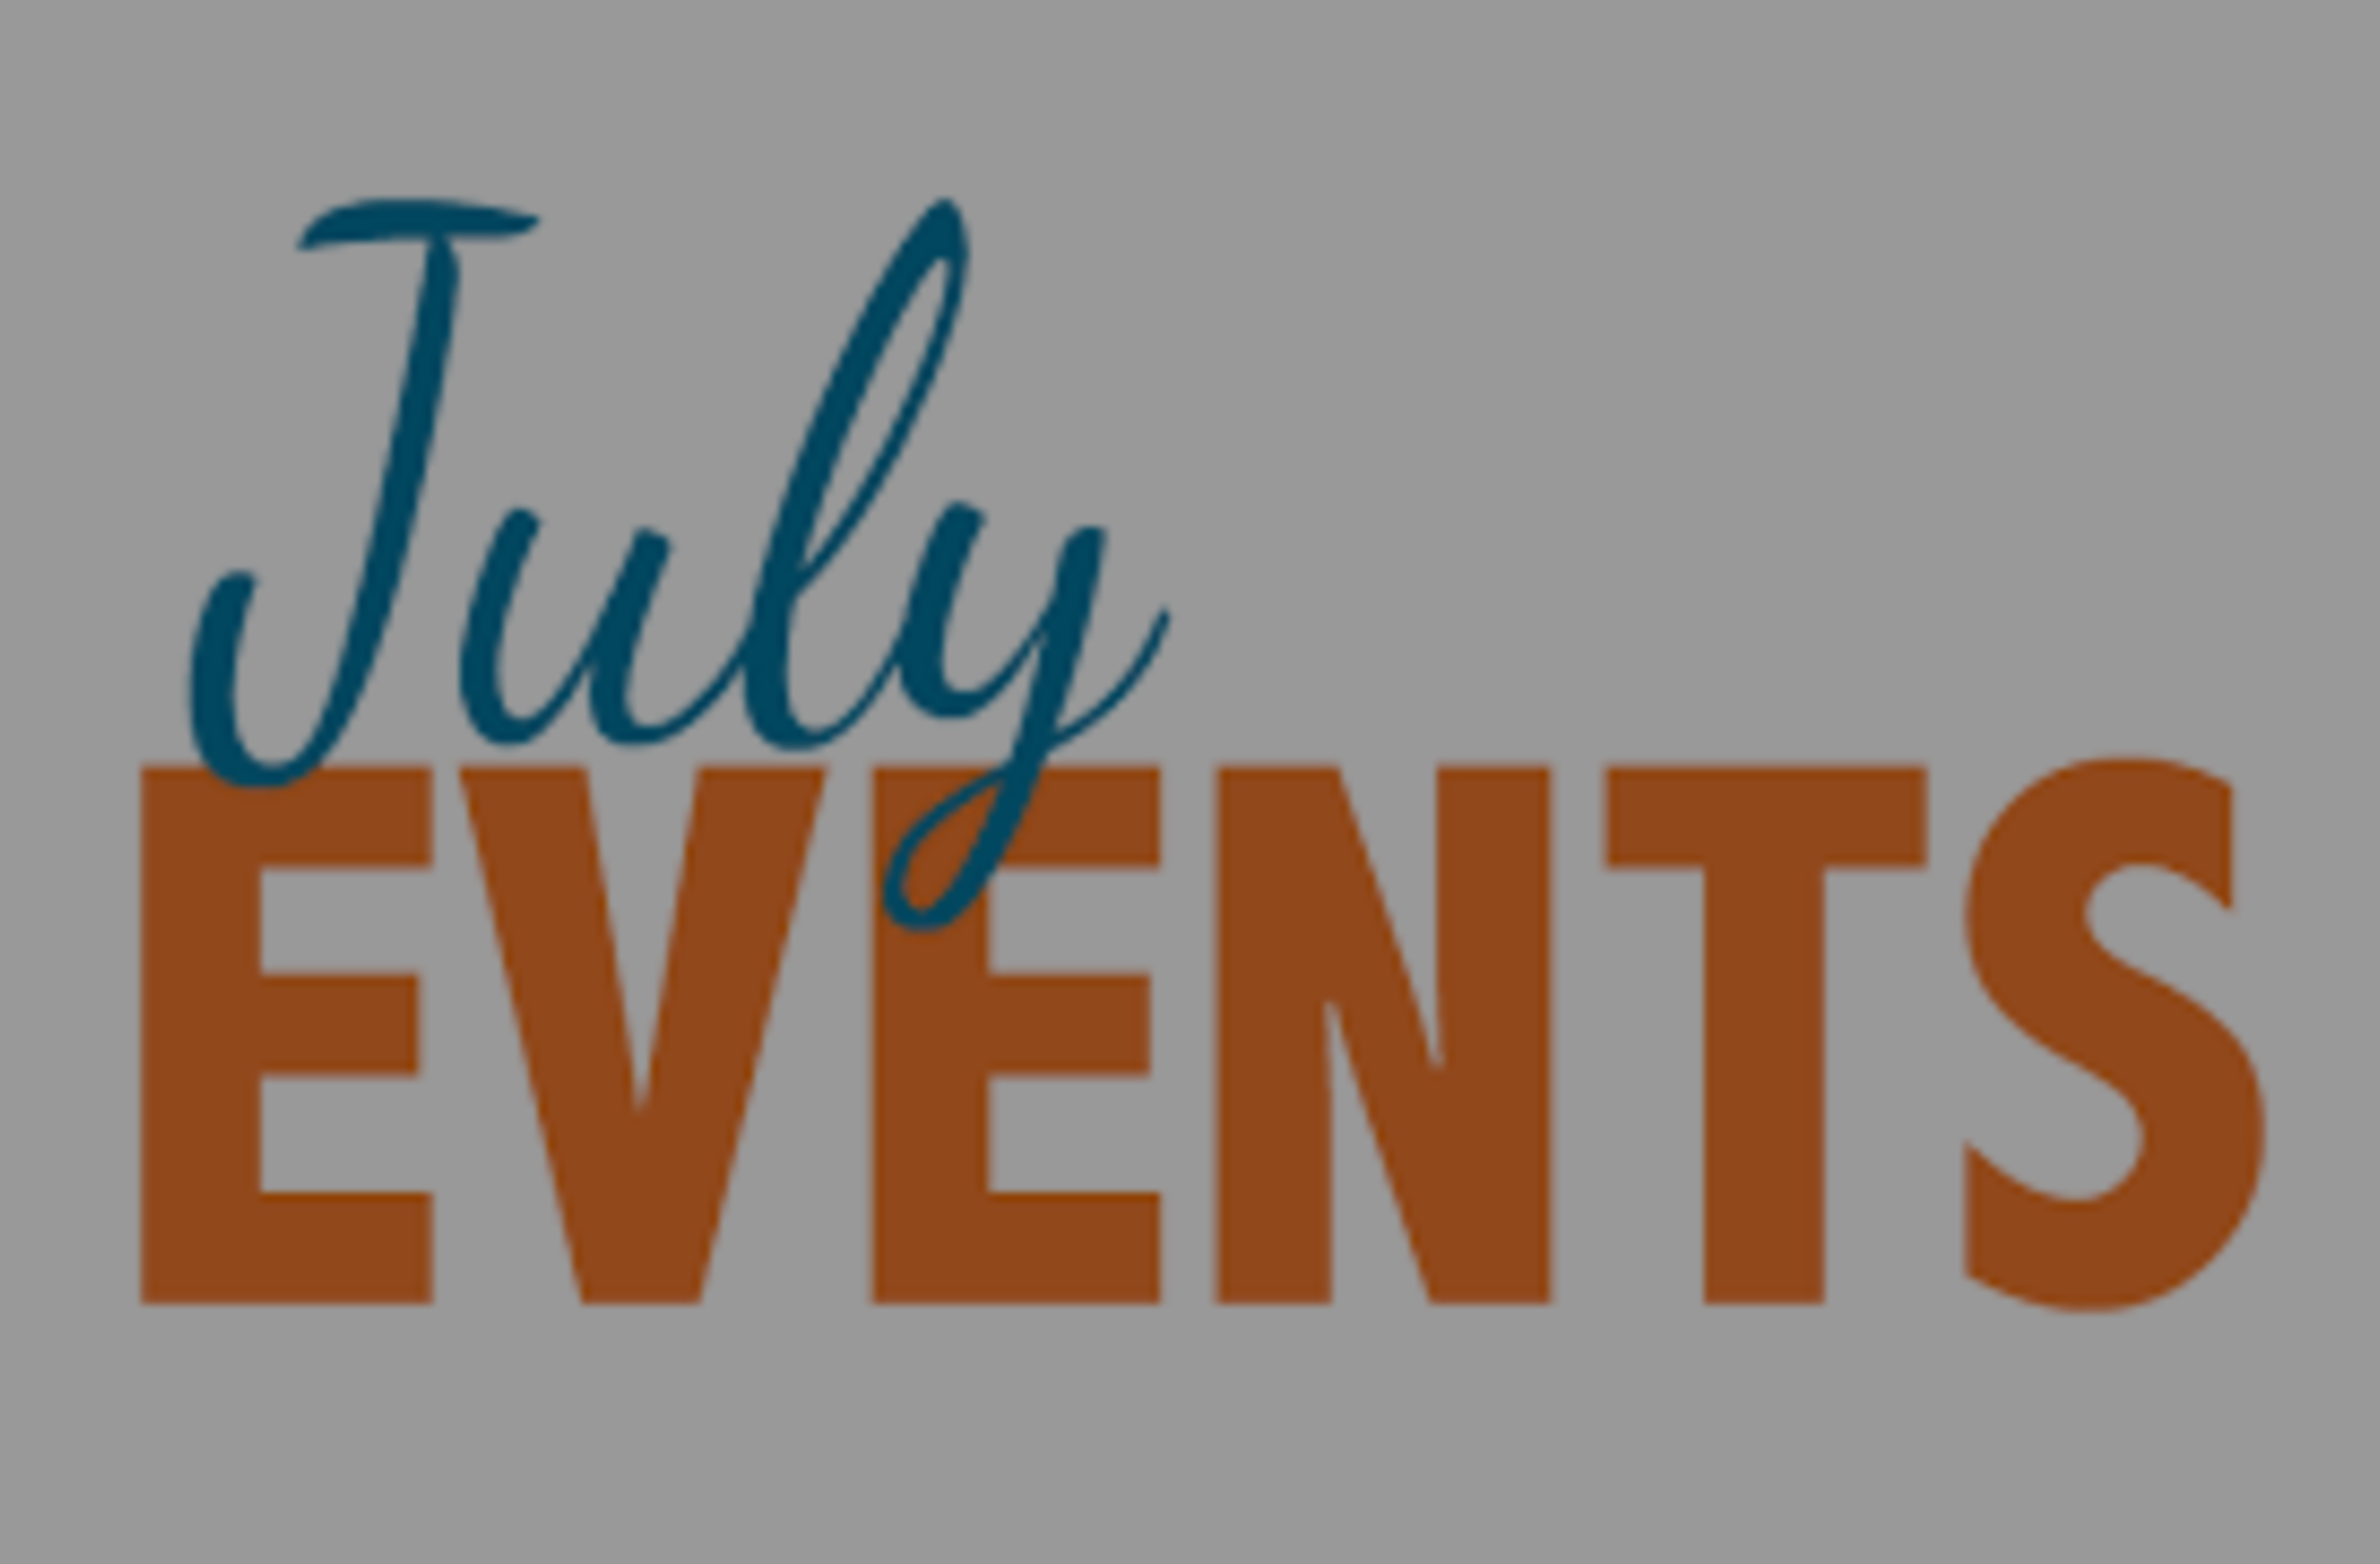 July Events in Monterey